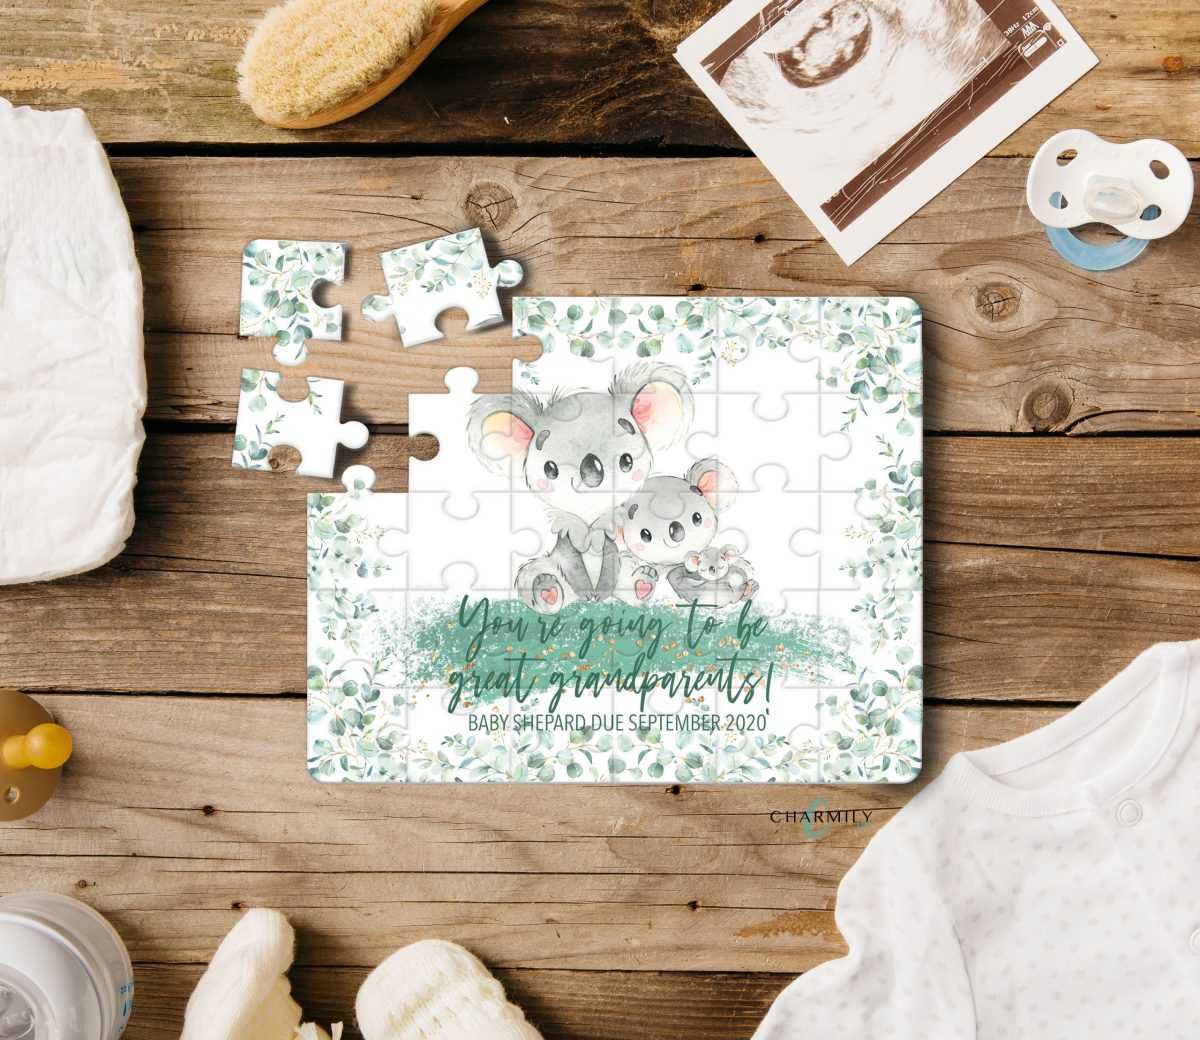 Koala-Fam3-great-grandparents-Baby-Announcement-Puzzle-Mockup-Recovered